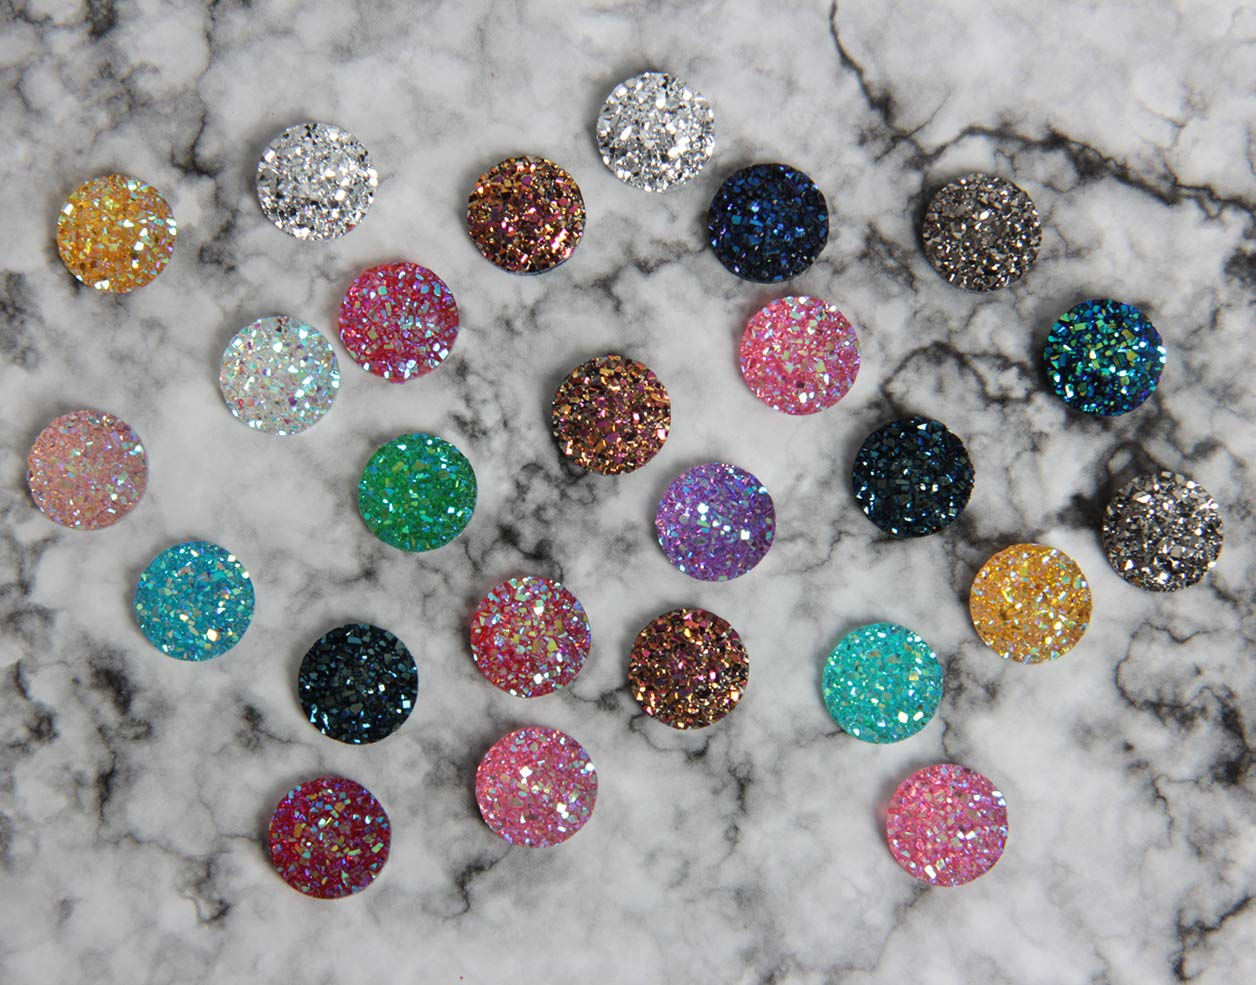 SBYURE 120 Pieces Resin Round Flat Back Mixed Shinny Color for Jewelry Making,DIY Crafts,12mm